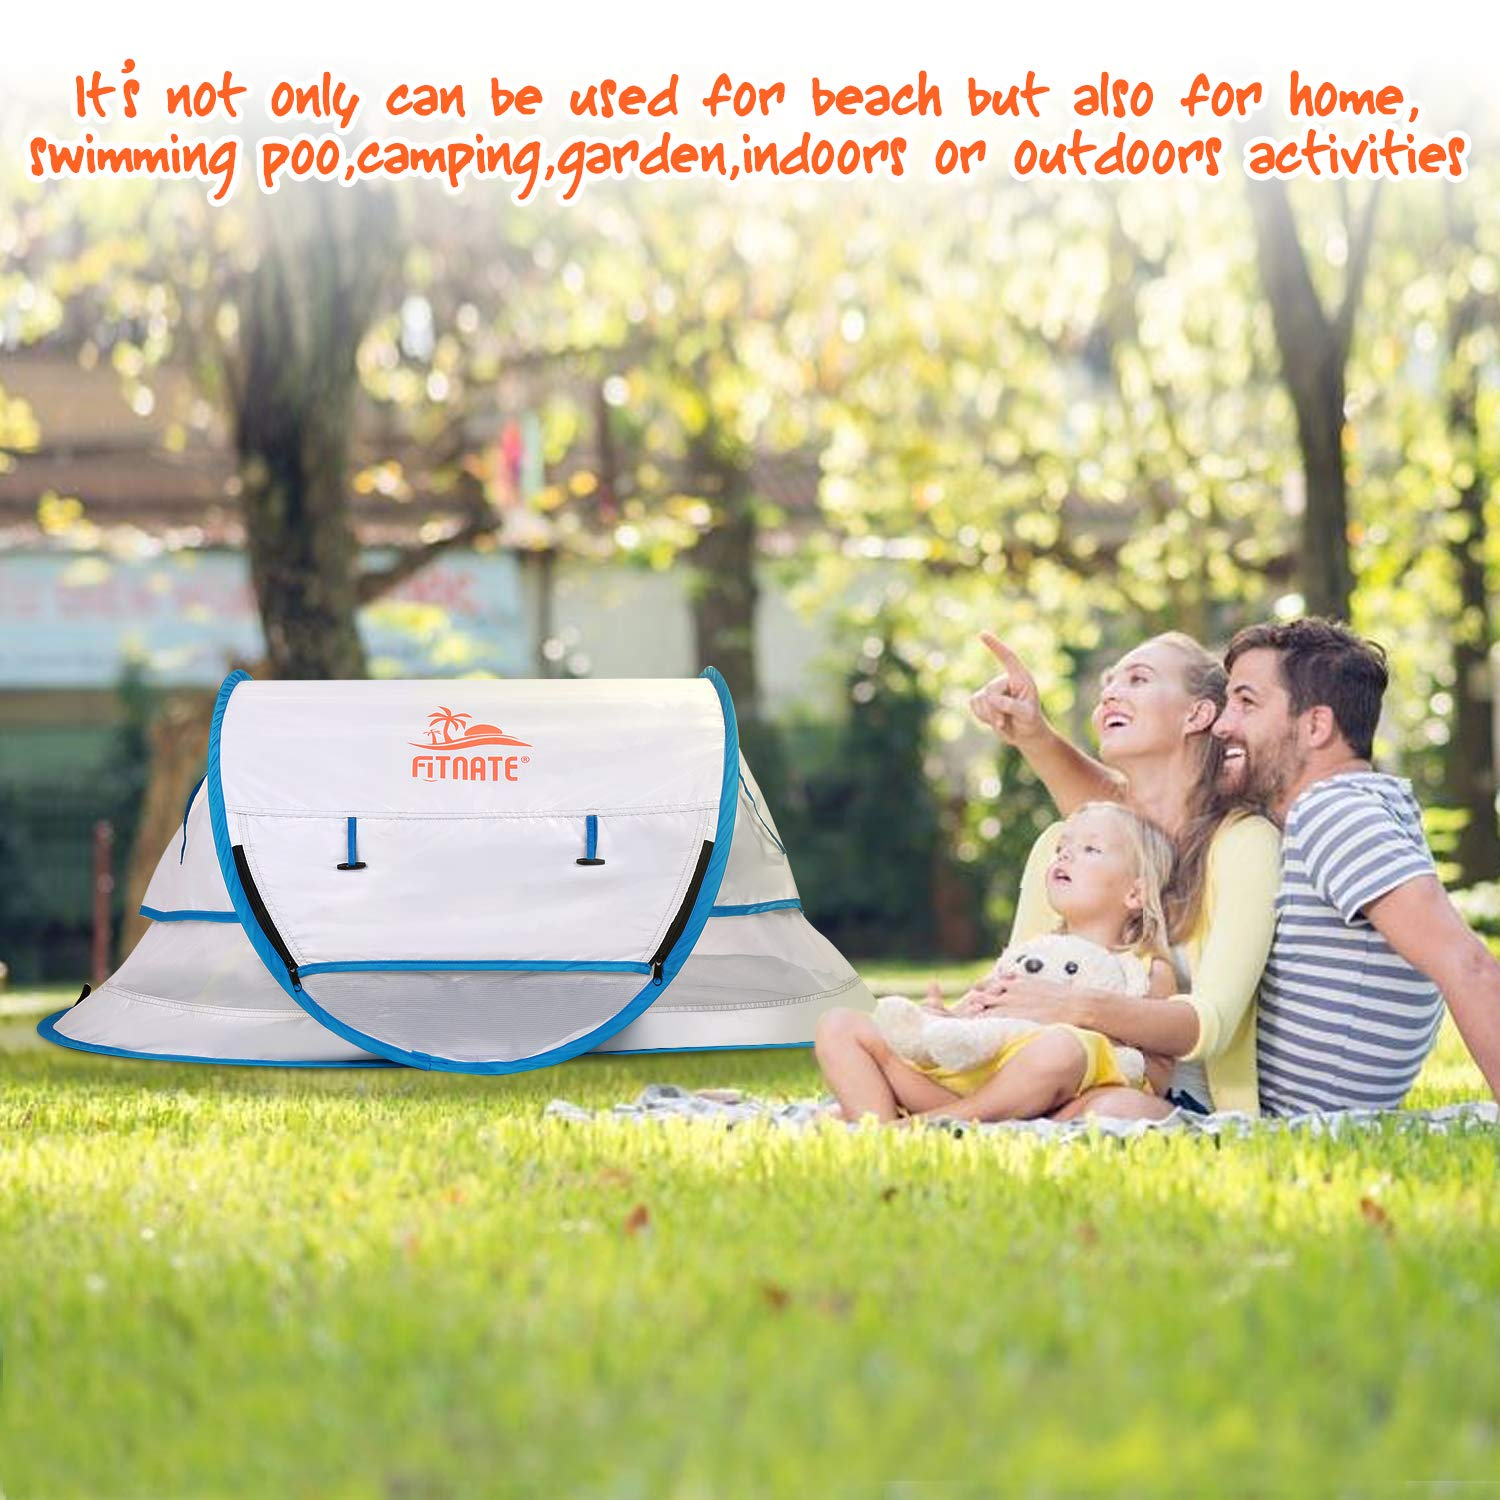 with Moisture-Proof Pad Infant Sun Shelters Pop Up with Storage Bag,2 Pegs for Outdoor and Indoor Use FITNATE Baby Beach Tent Portable Baby Travel Tent UPF 50